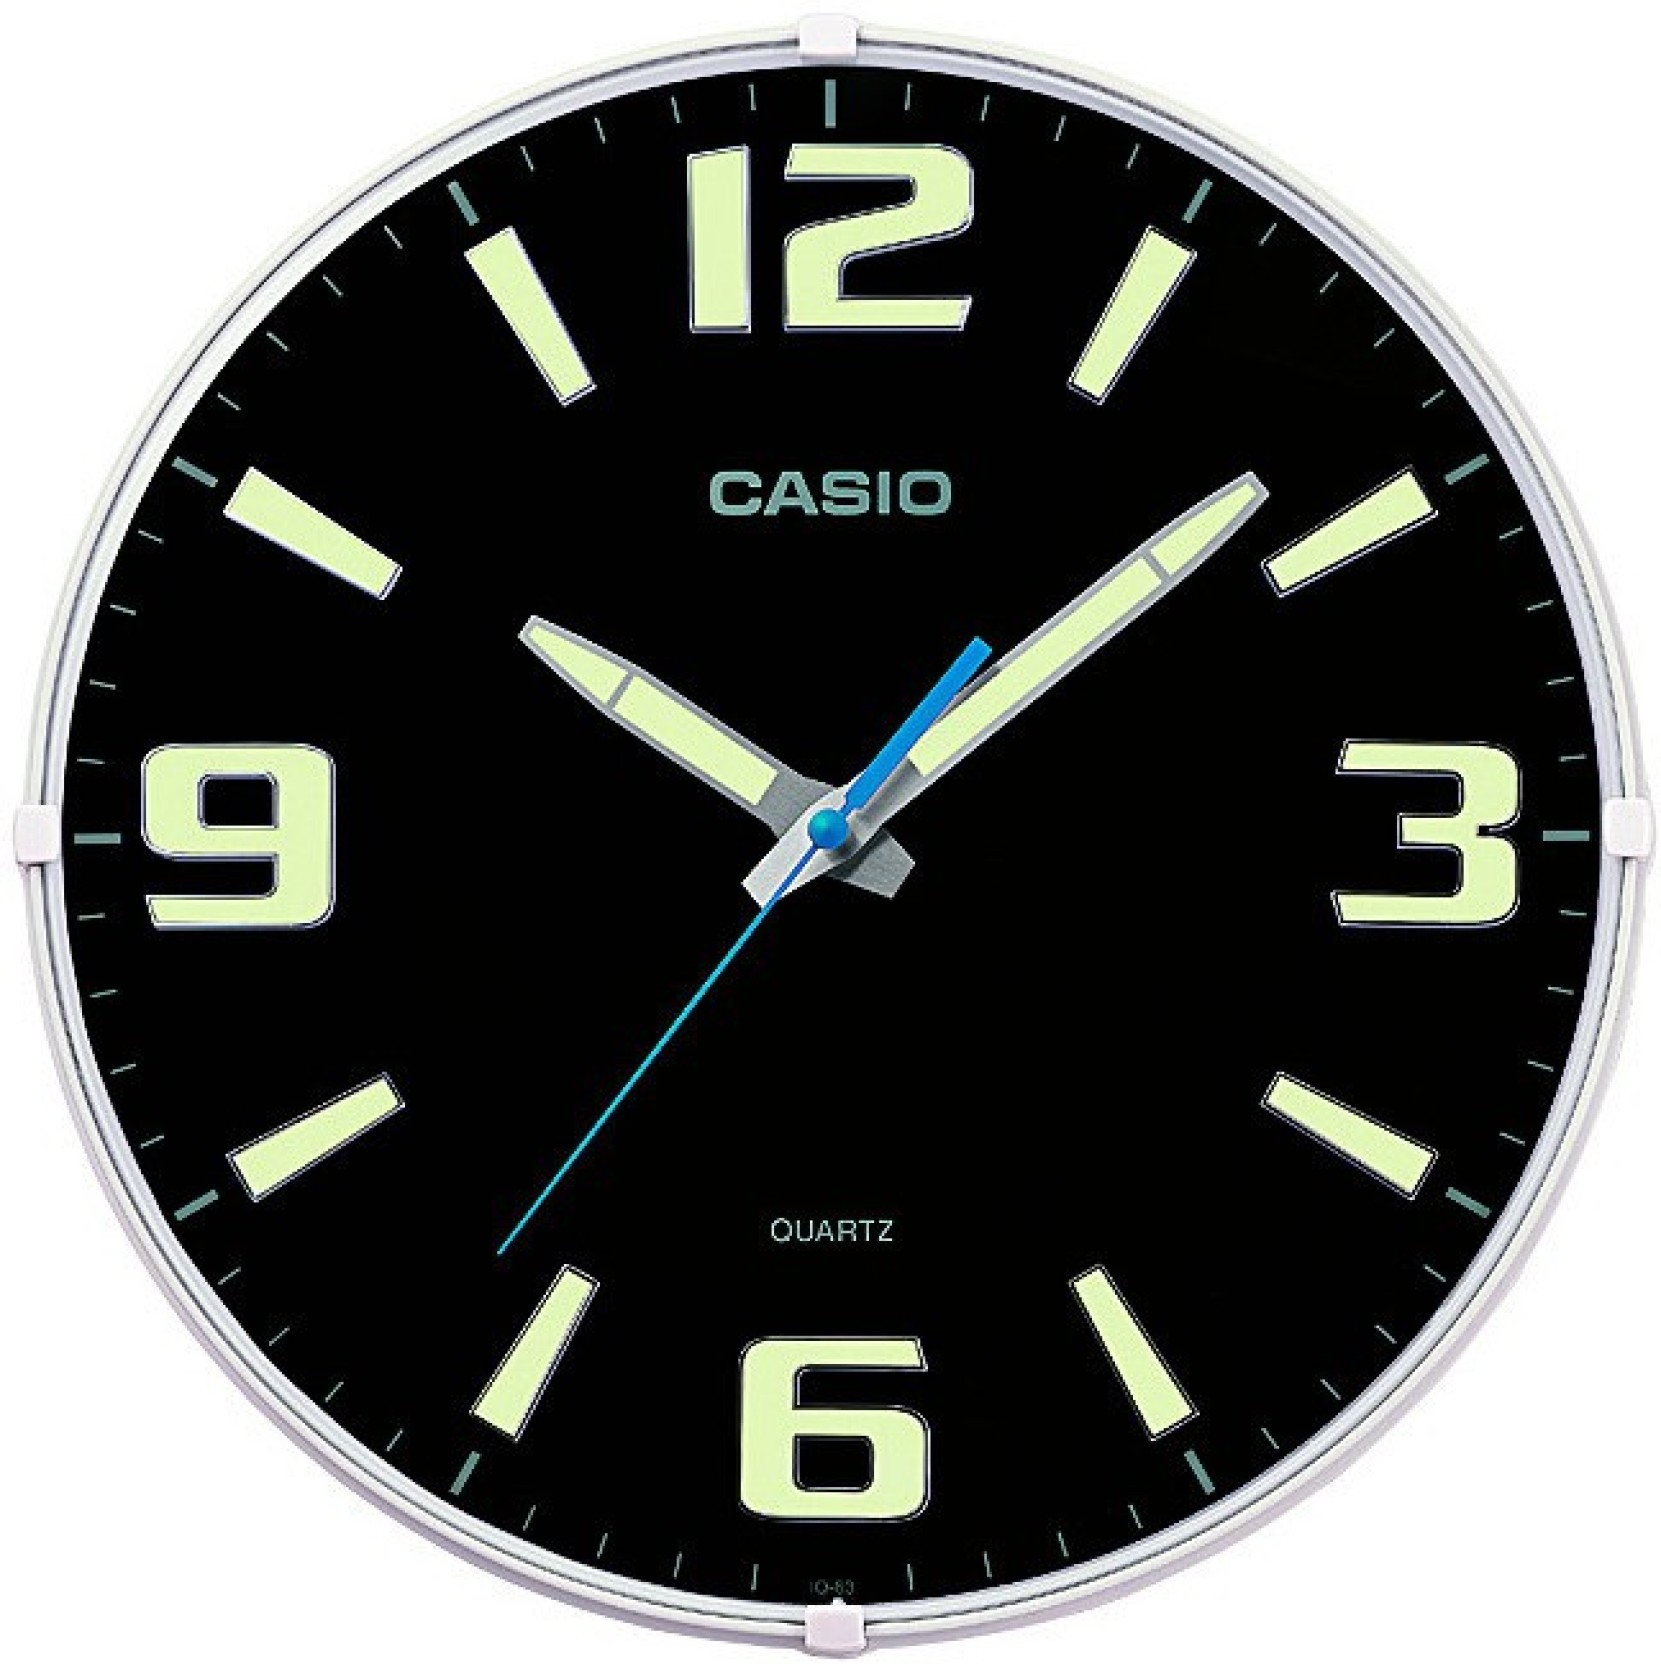 Casio wall clock images home wall decoration ideas casio analog wall clock price in india buy casio analog wall casio analog wall clock add to cart amipublicfo amipublicfo Choice Image